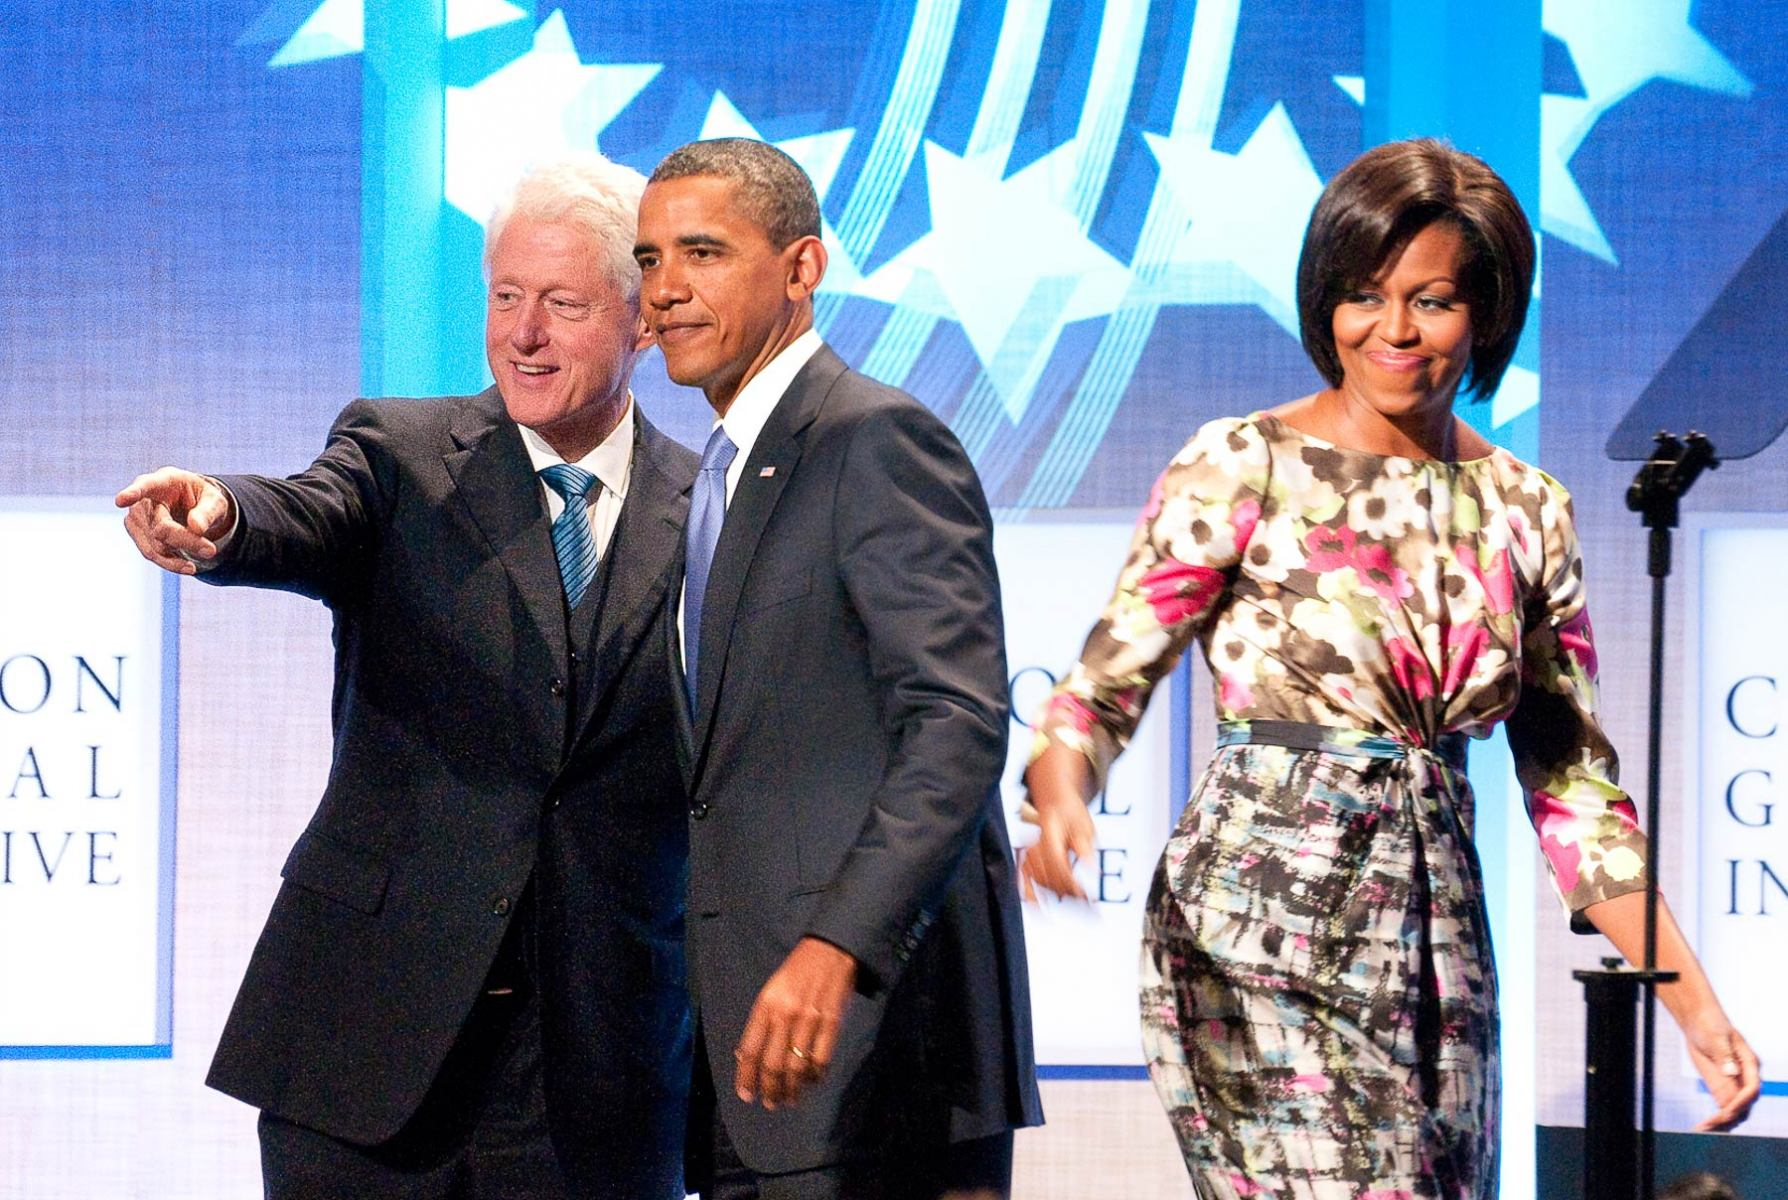 Presidents-bill-Clinton-barak-Obama-and-Michele-Obama